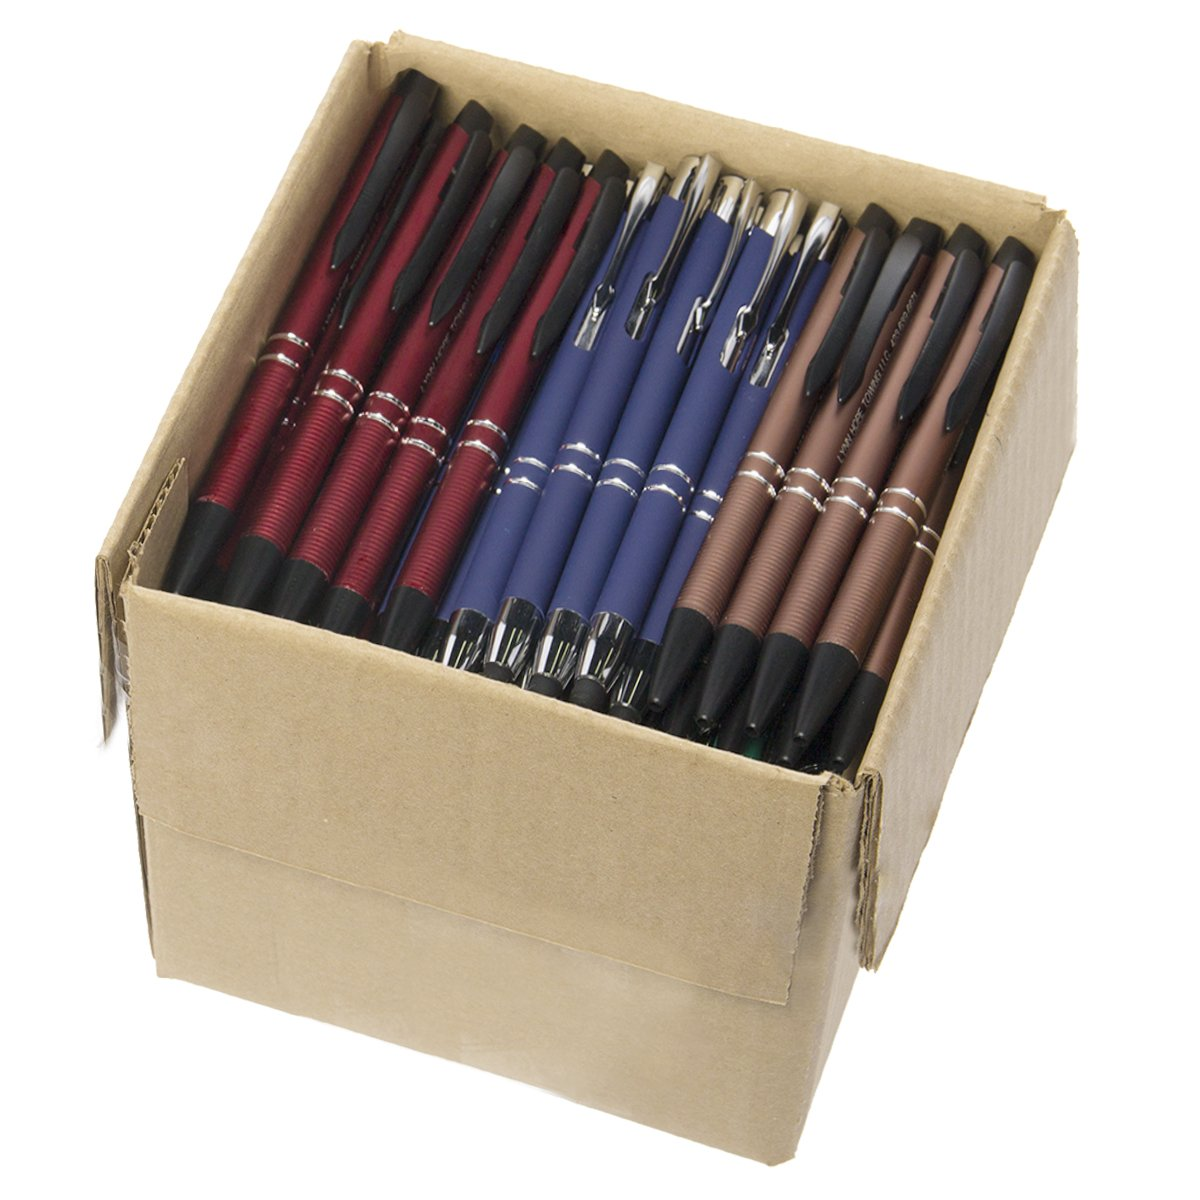 5lb Box Of Assorted Misprint Ink Pens Bulk Ballpoint Pens Retractable Metal Lot Wholesale by Unknown